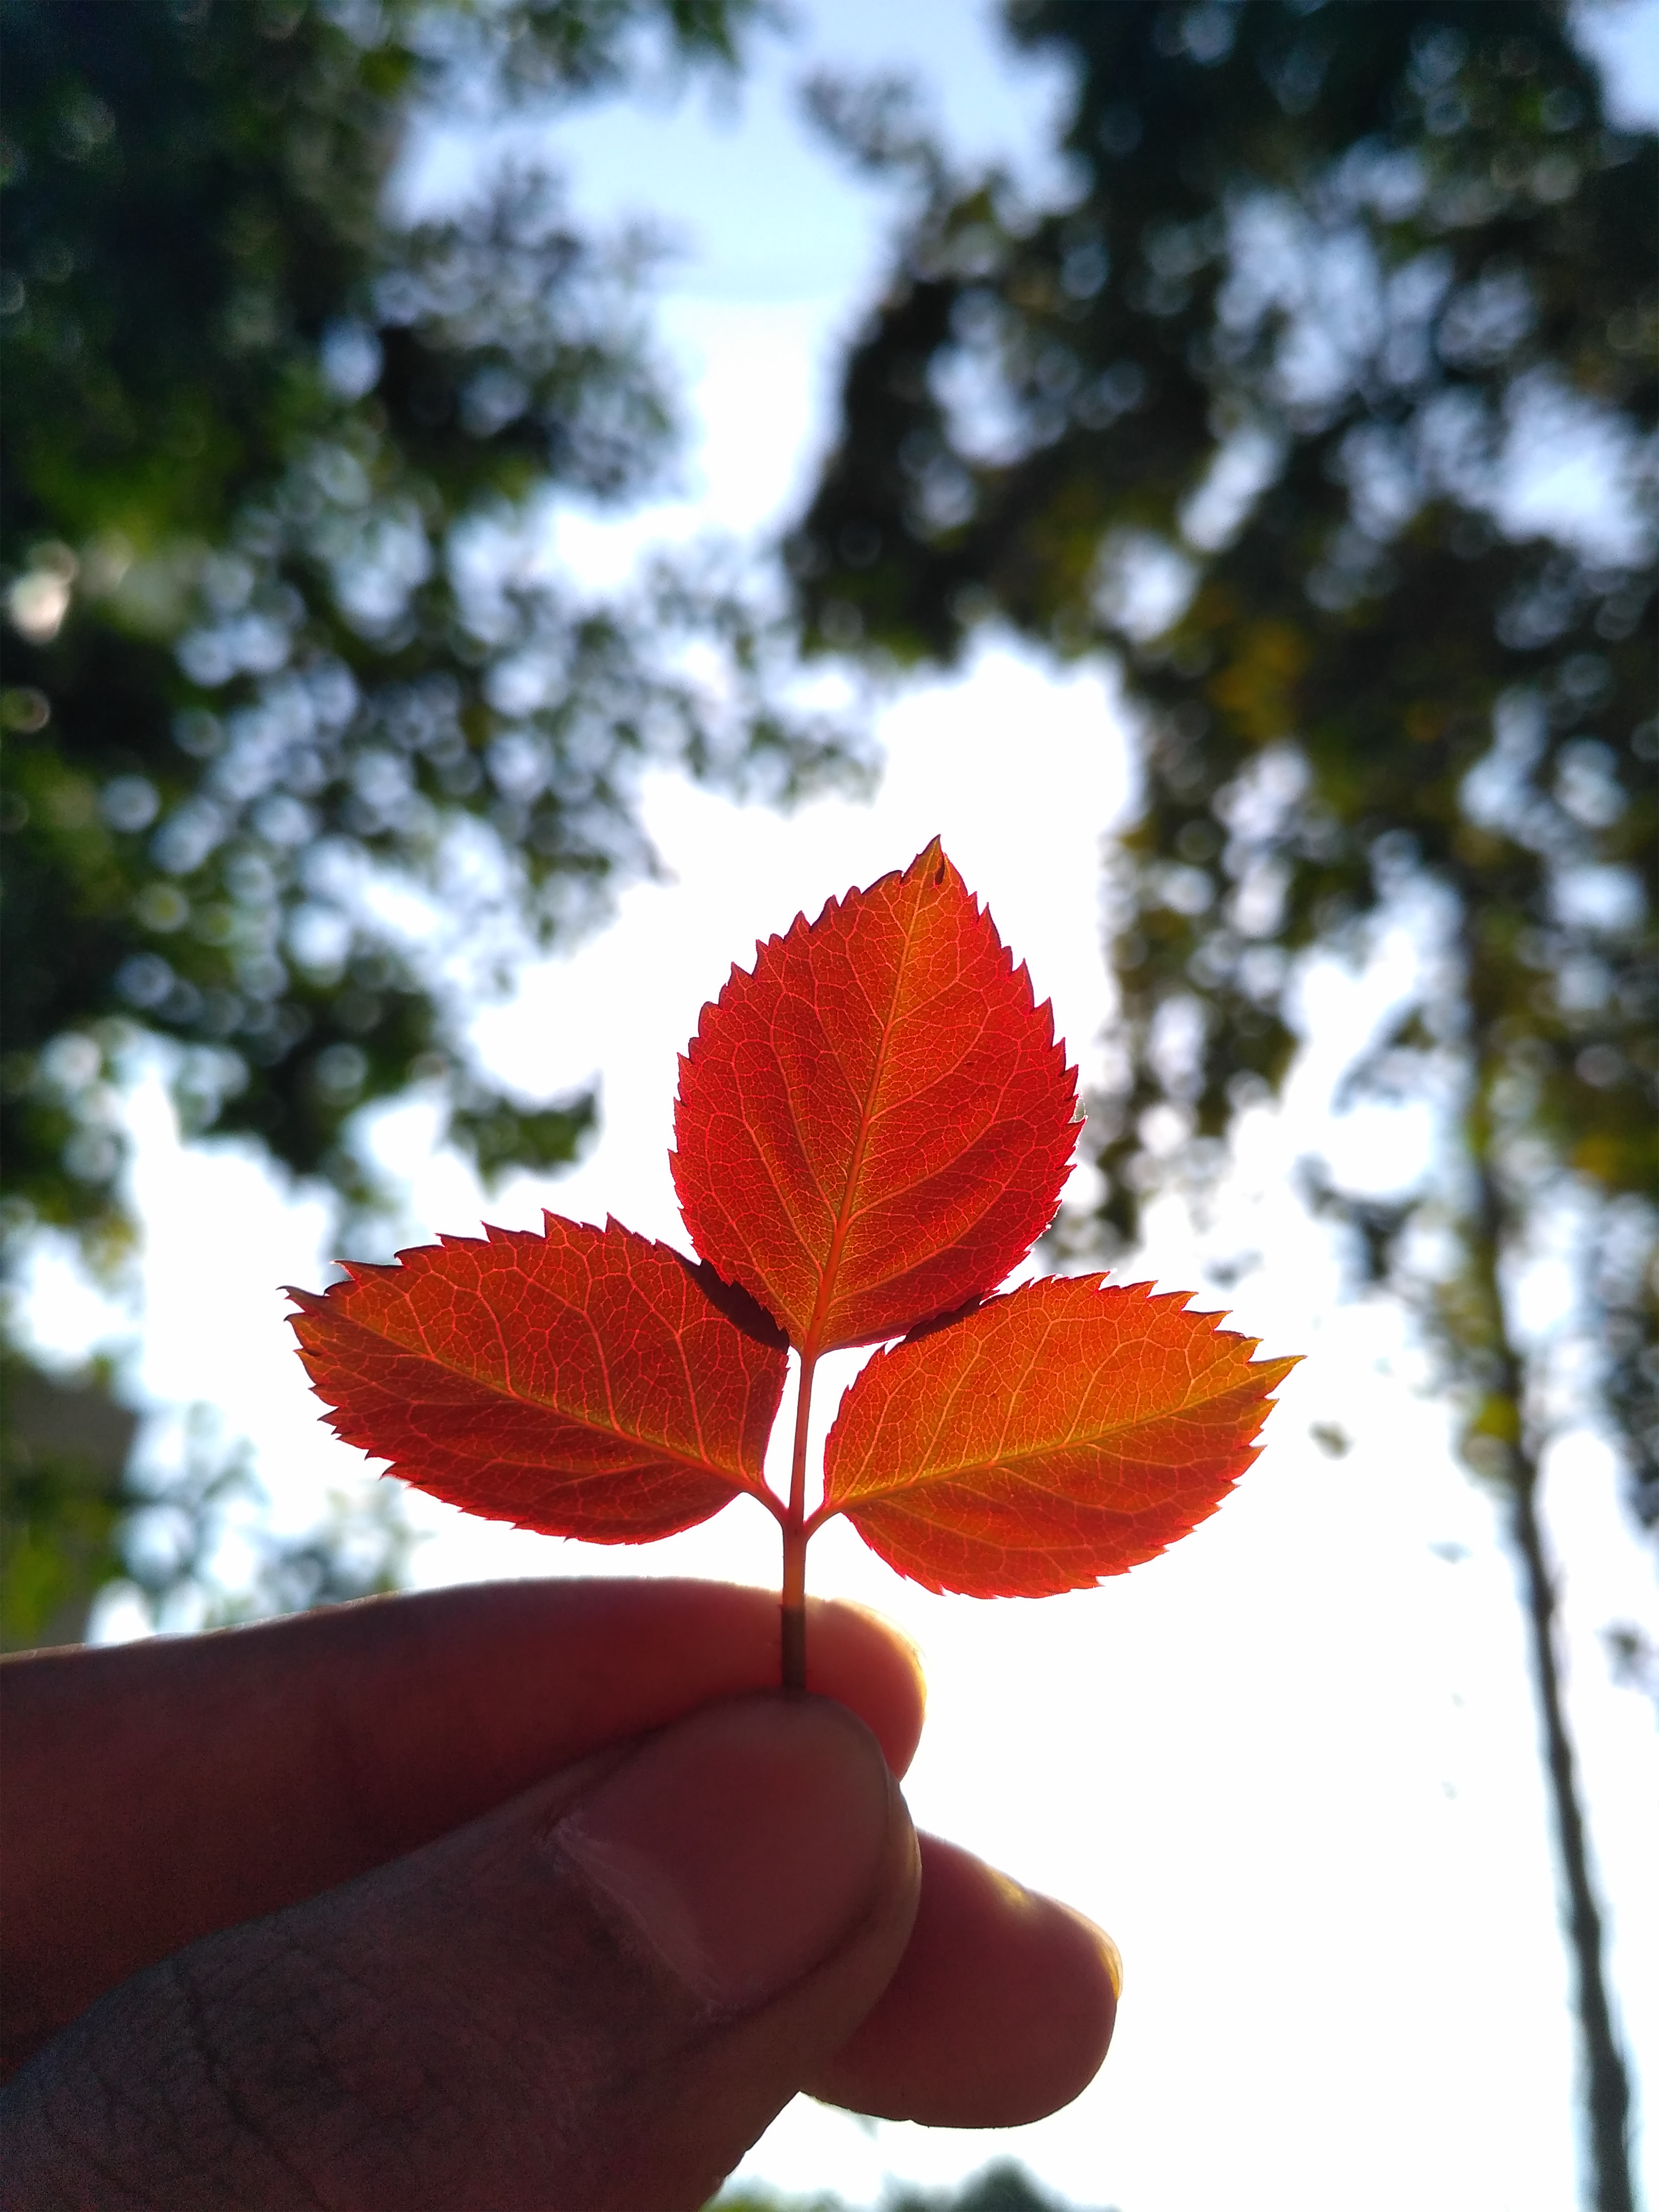 Red rose plant leaves